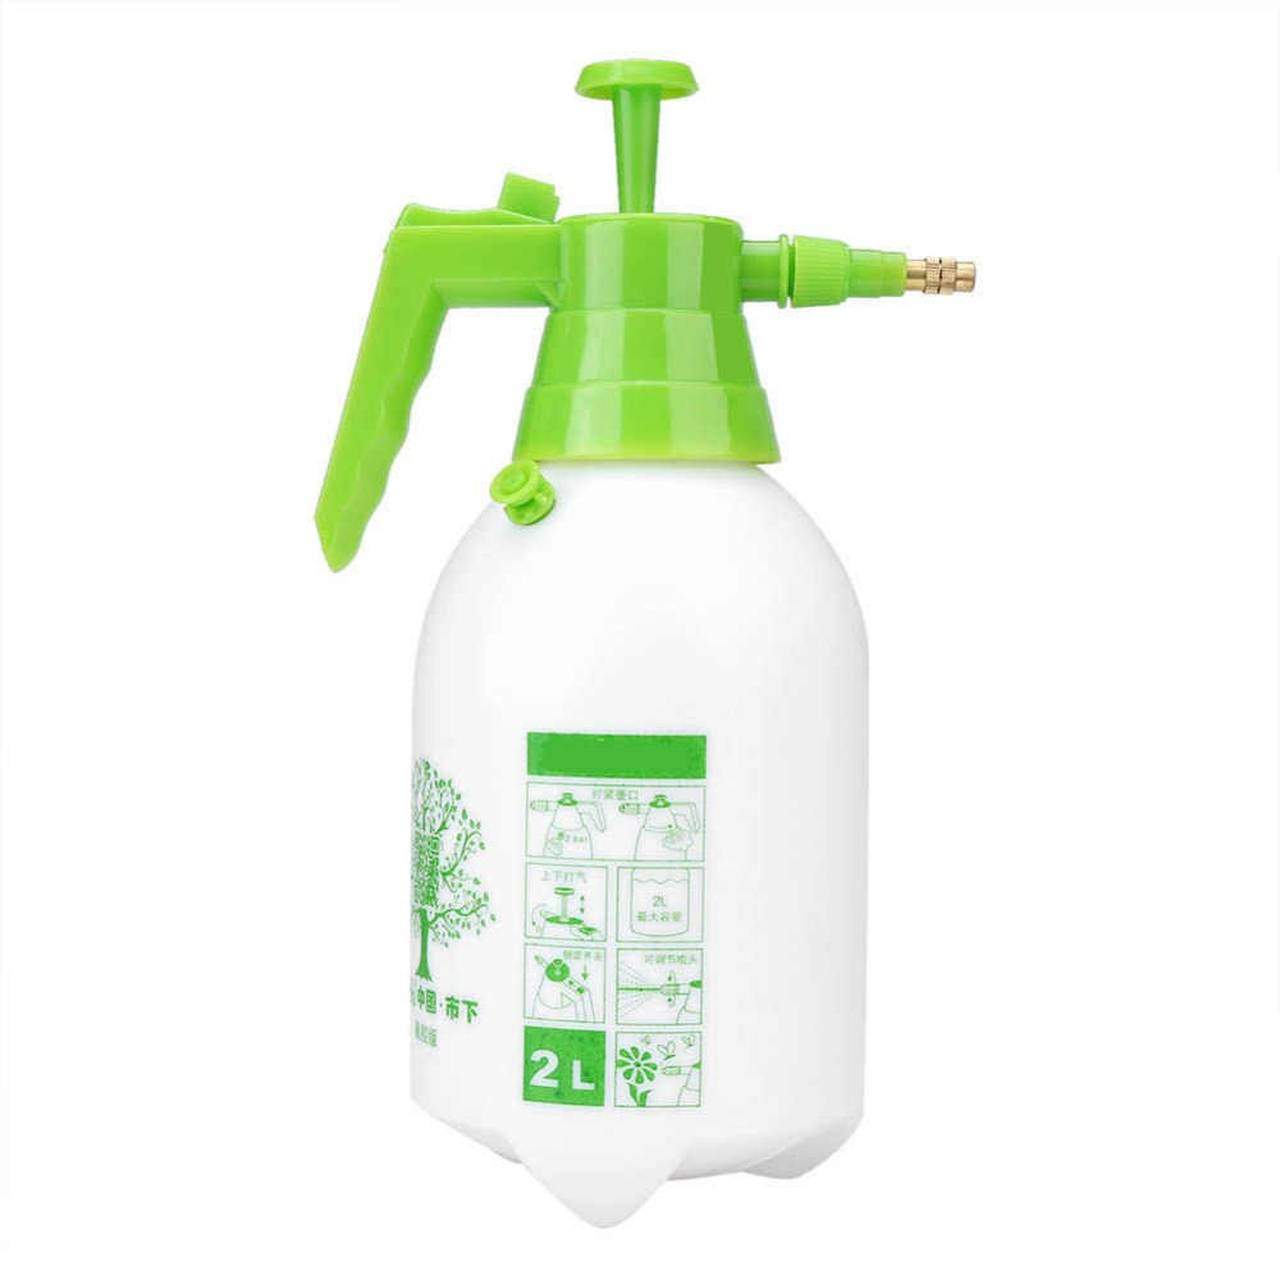 Sprayers are very useful tools to work in your garden